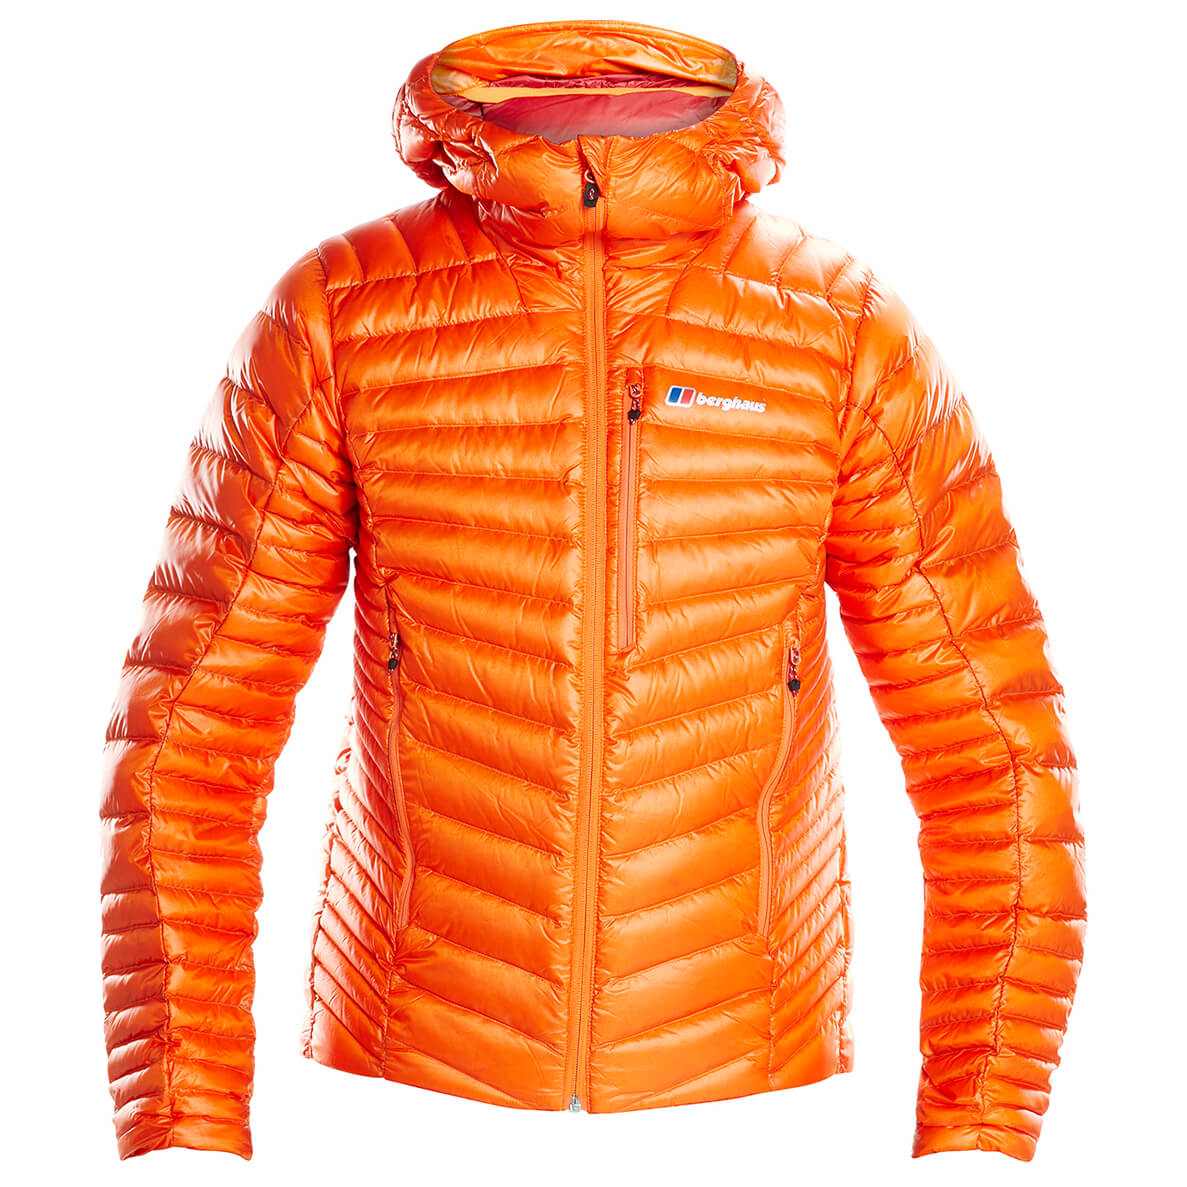 quality design cd5a8 47dad Berghaus Extrem Micro Down Jacket - Giacca in piumino Uomo ...